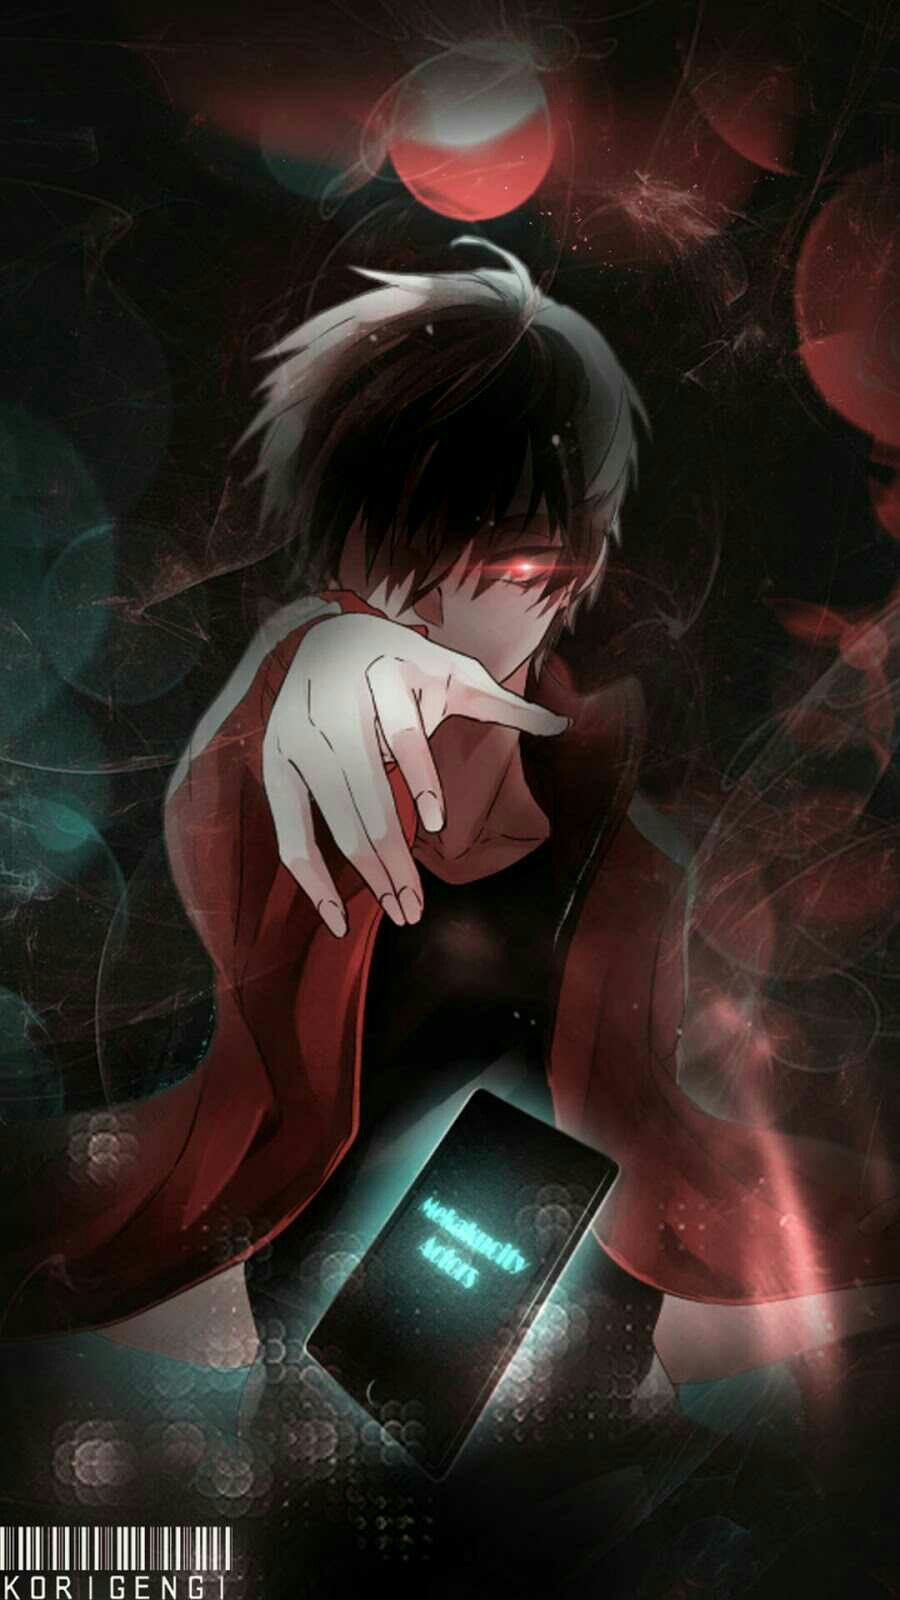 Mirip Komik Dice Gituu Kerenn In 2020 Evil Anime Dark Anime Original 1080x2160 Wallpaper Id 767573 Mo In 2020 Evil Anime Anime Wallpaper Phone Android Wallpaper Anime